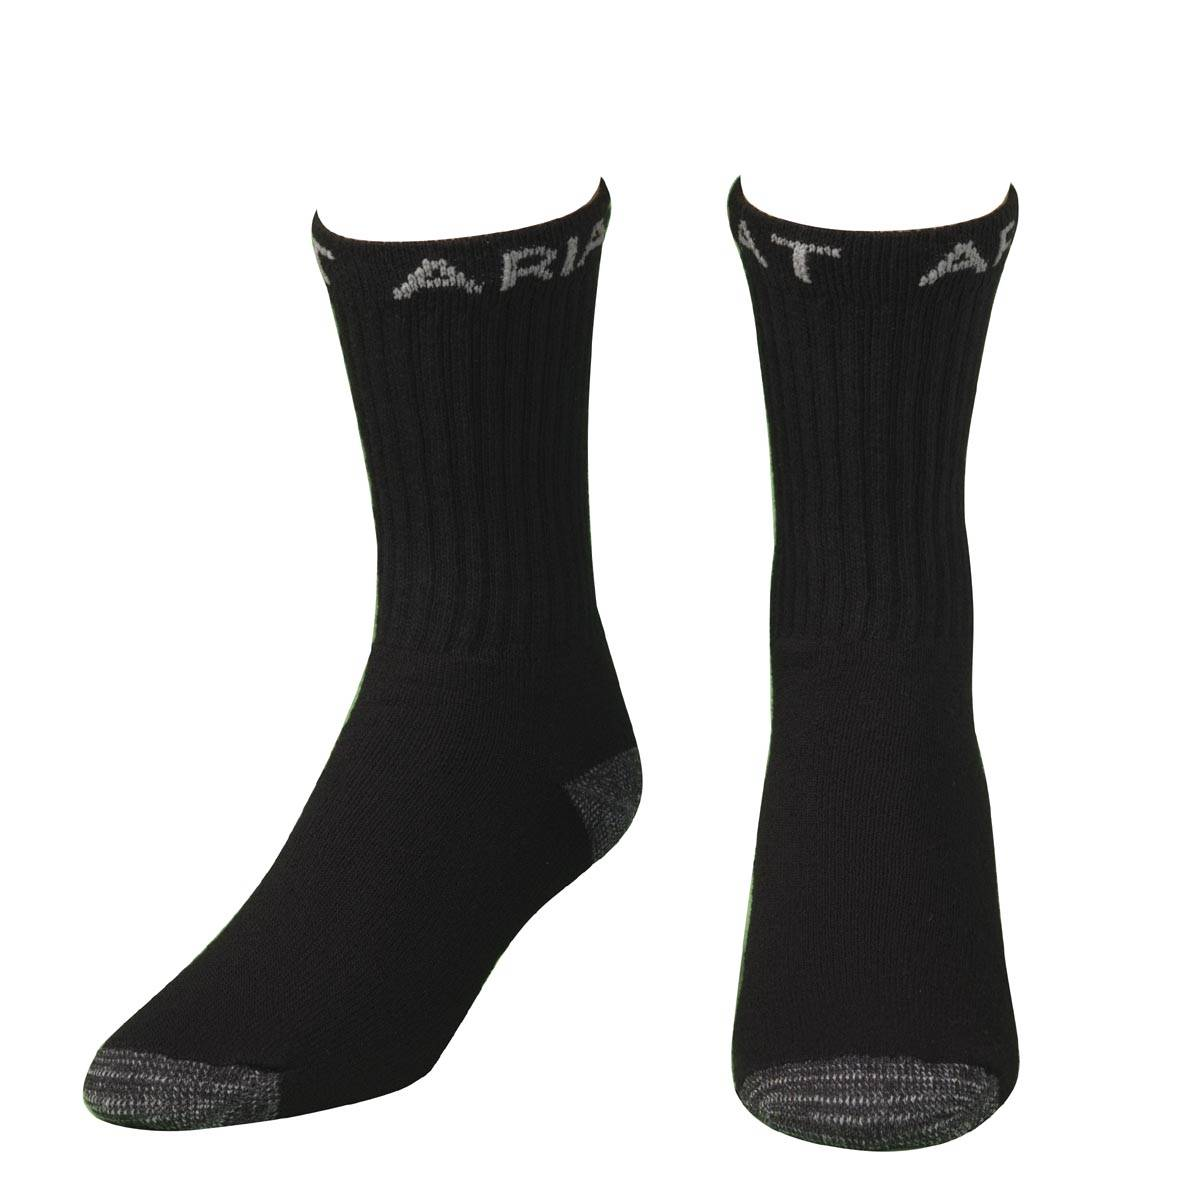 ARIAT Men's Work Boot Crew Sock, 3 Pack